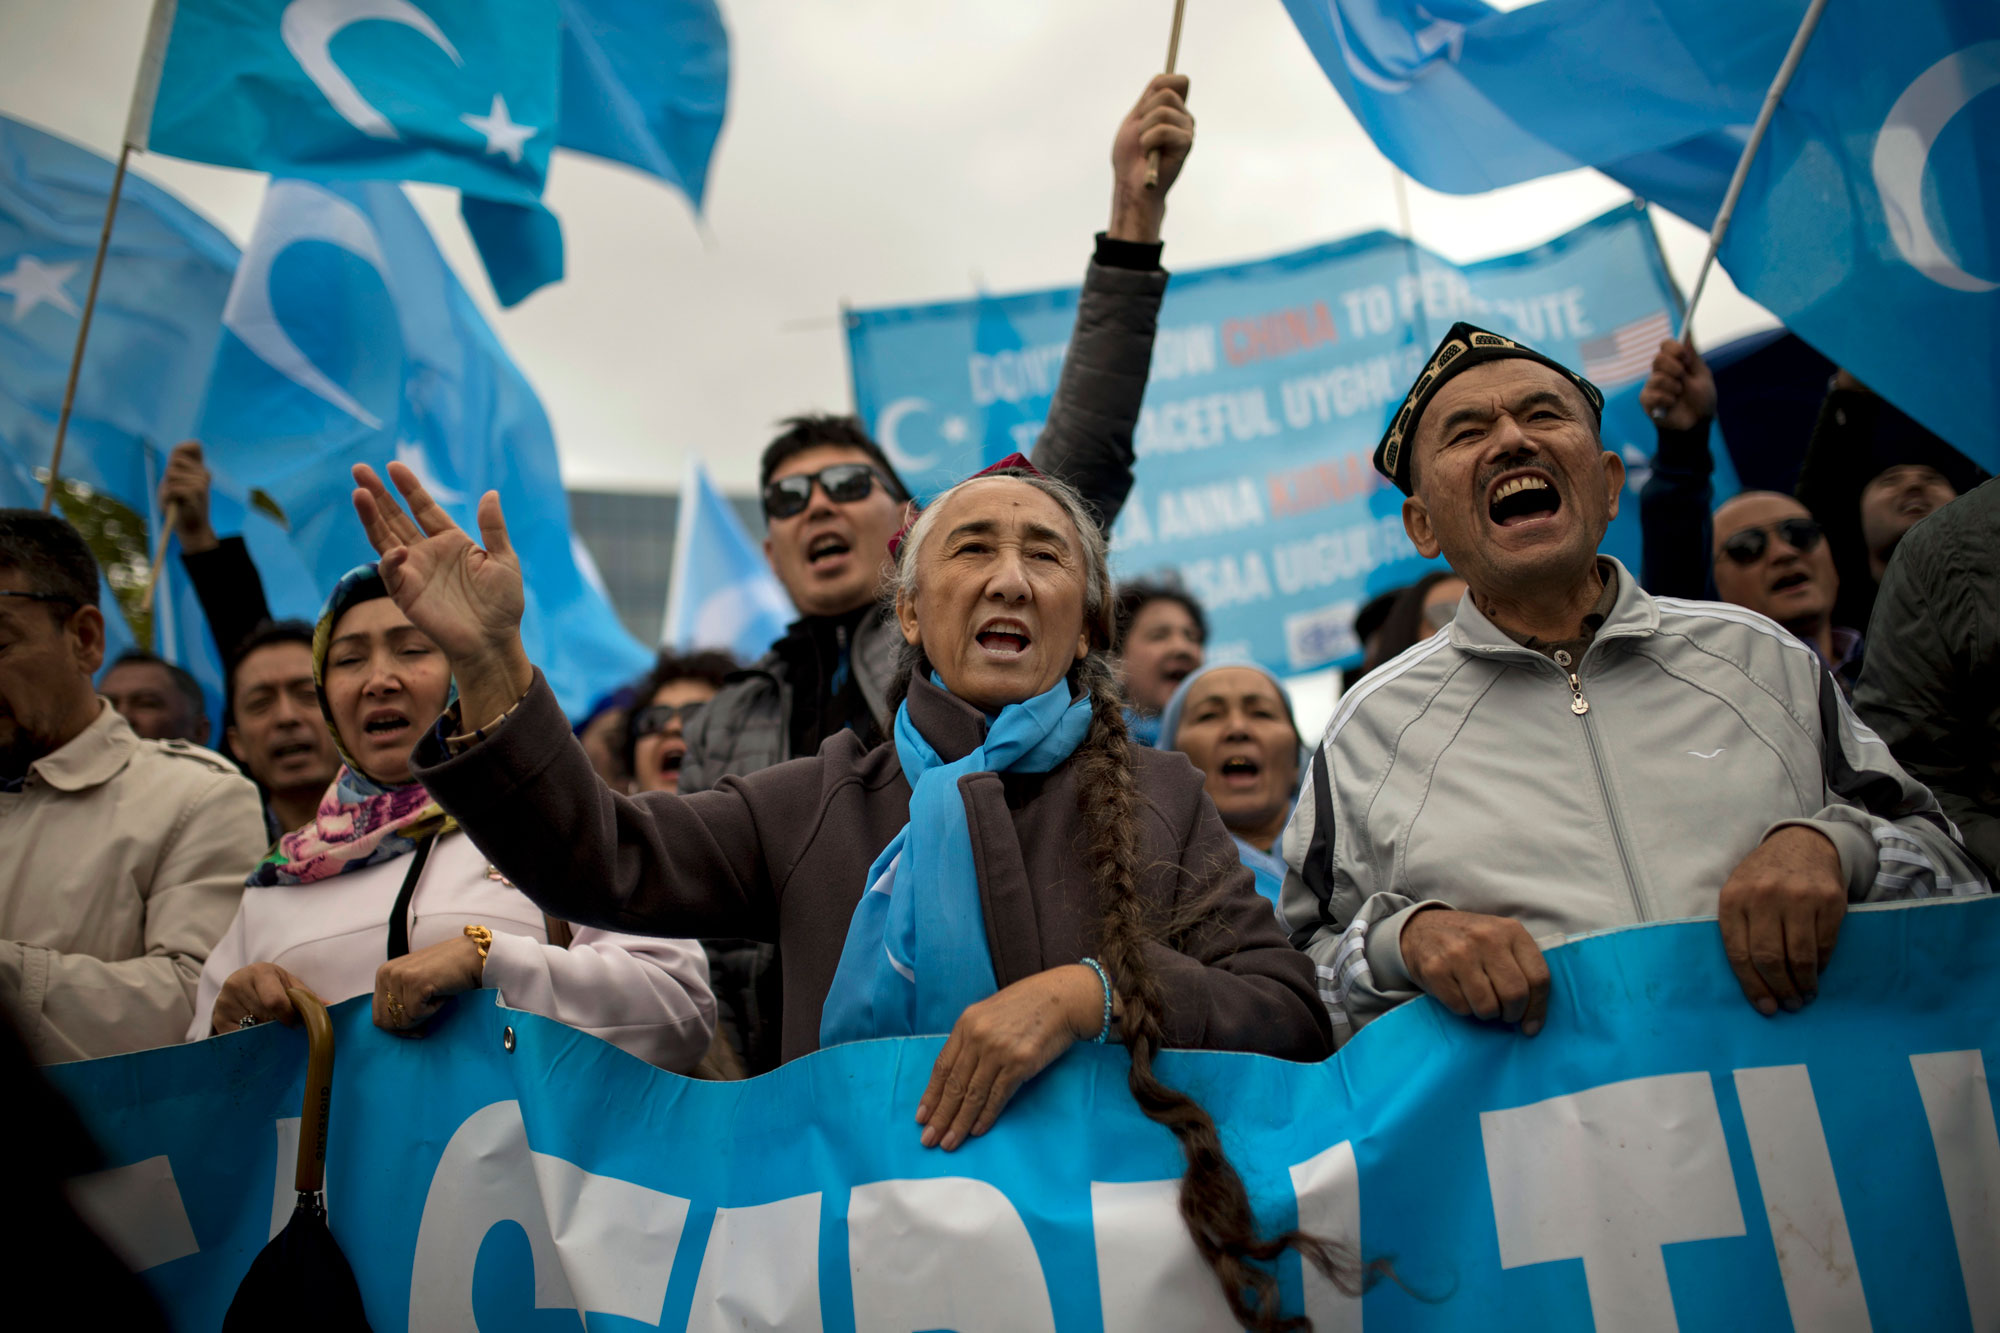 <p>Rebiya Kadeer, center, former head of the pro-independence World Uyghur Congress, shouts slogans with others holding Uyghur flags, or pro-independence of Eastern Turkistan, during a protest in Brussels, Monday, Oct. 1, 2018.</p>